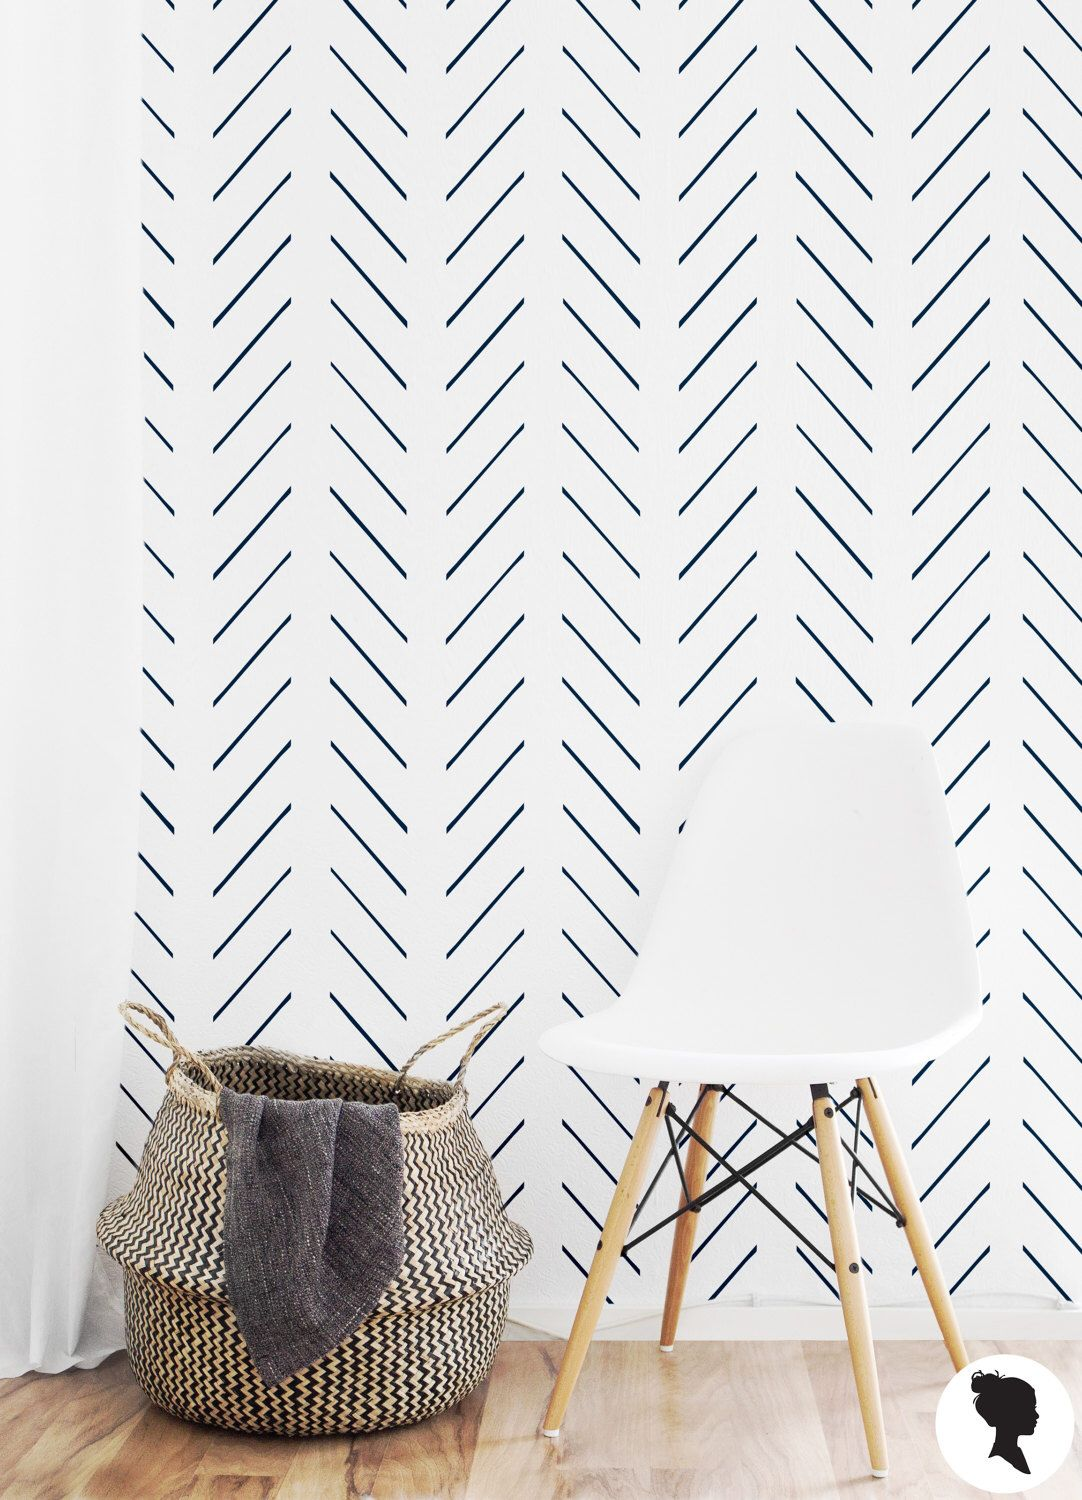 Delicate Herringbone Wallpaper Traditional Or Self Adhesive Wallpaper M009 By Livettes On Et Herringbone Wallpaper Nursery Wall Decor Boy European Home Decor